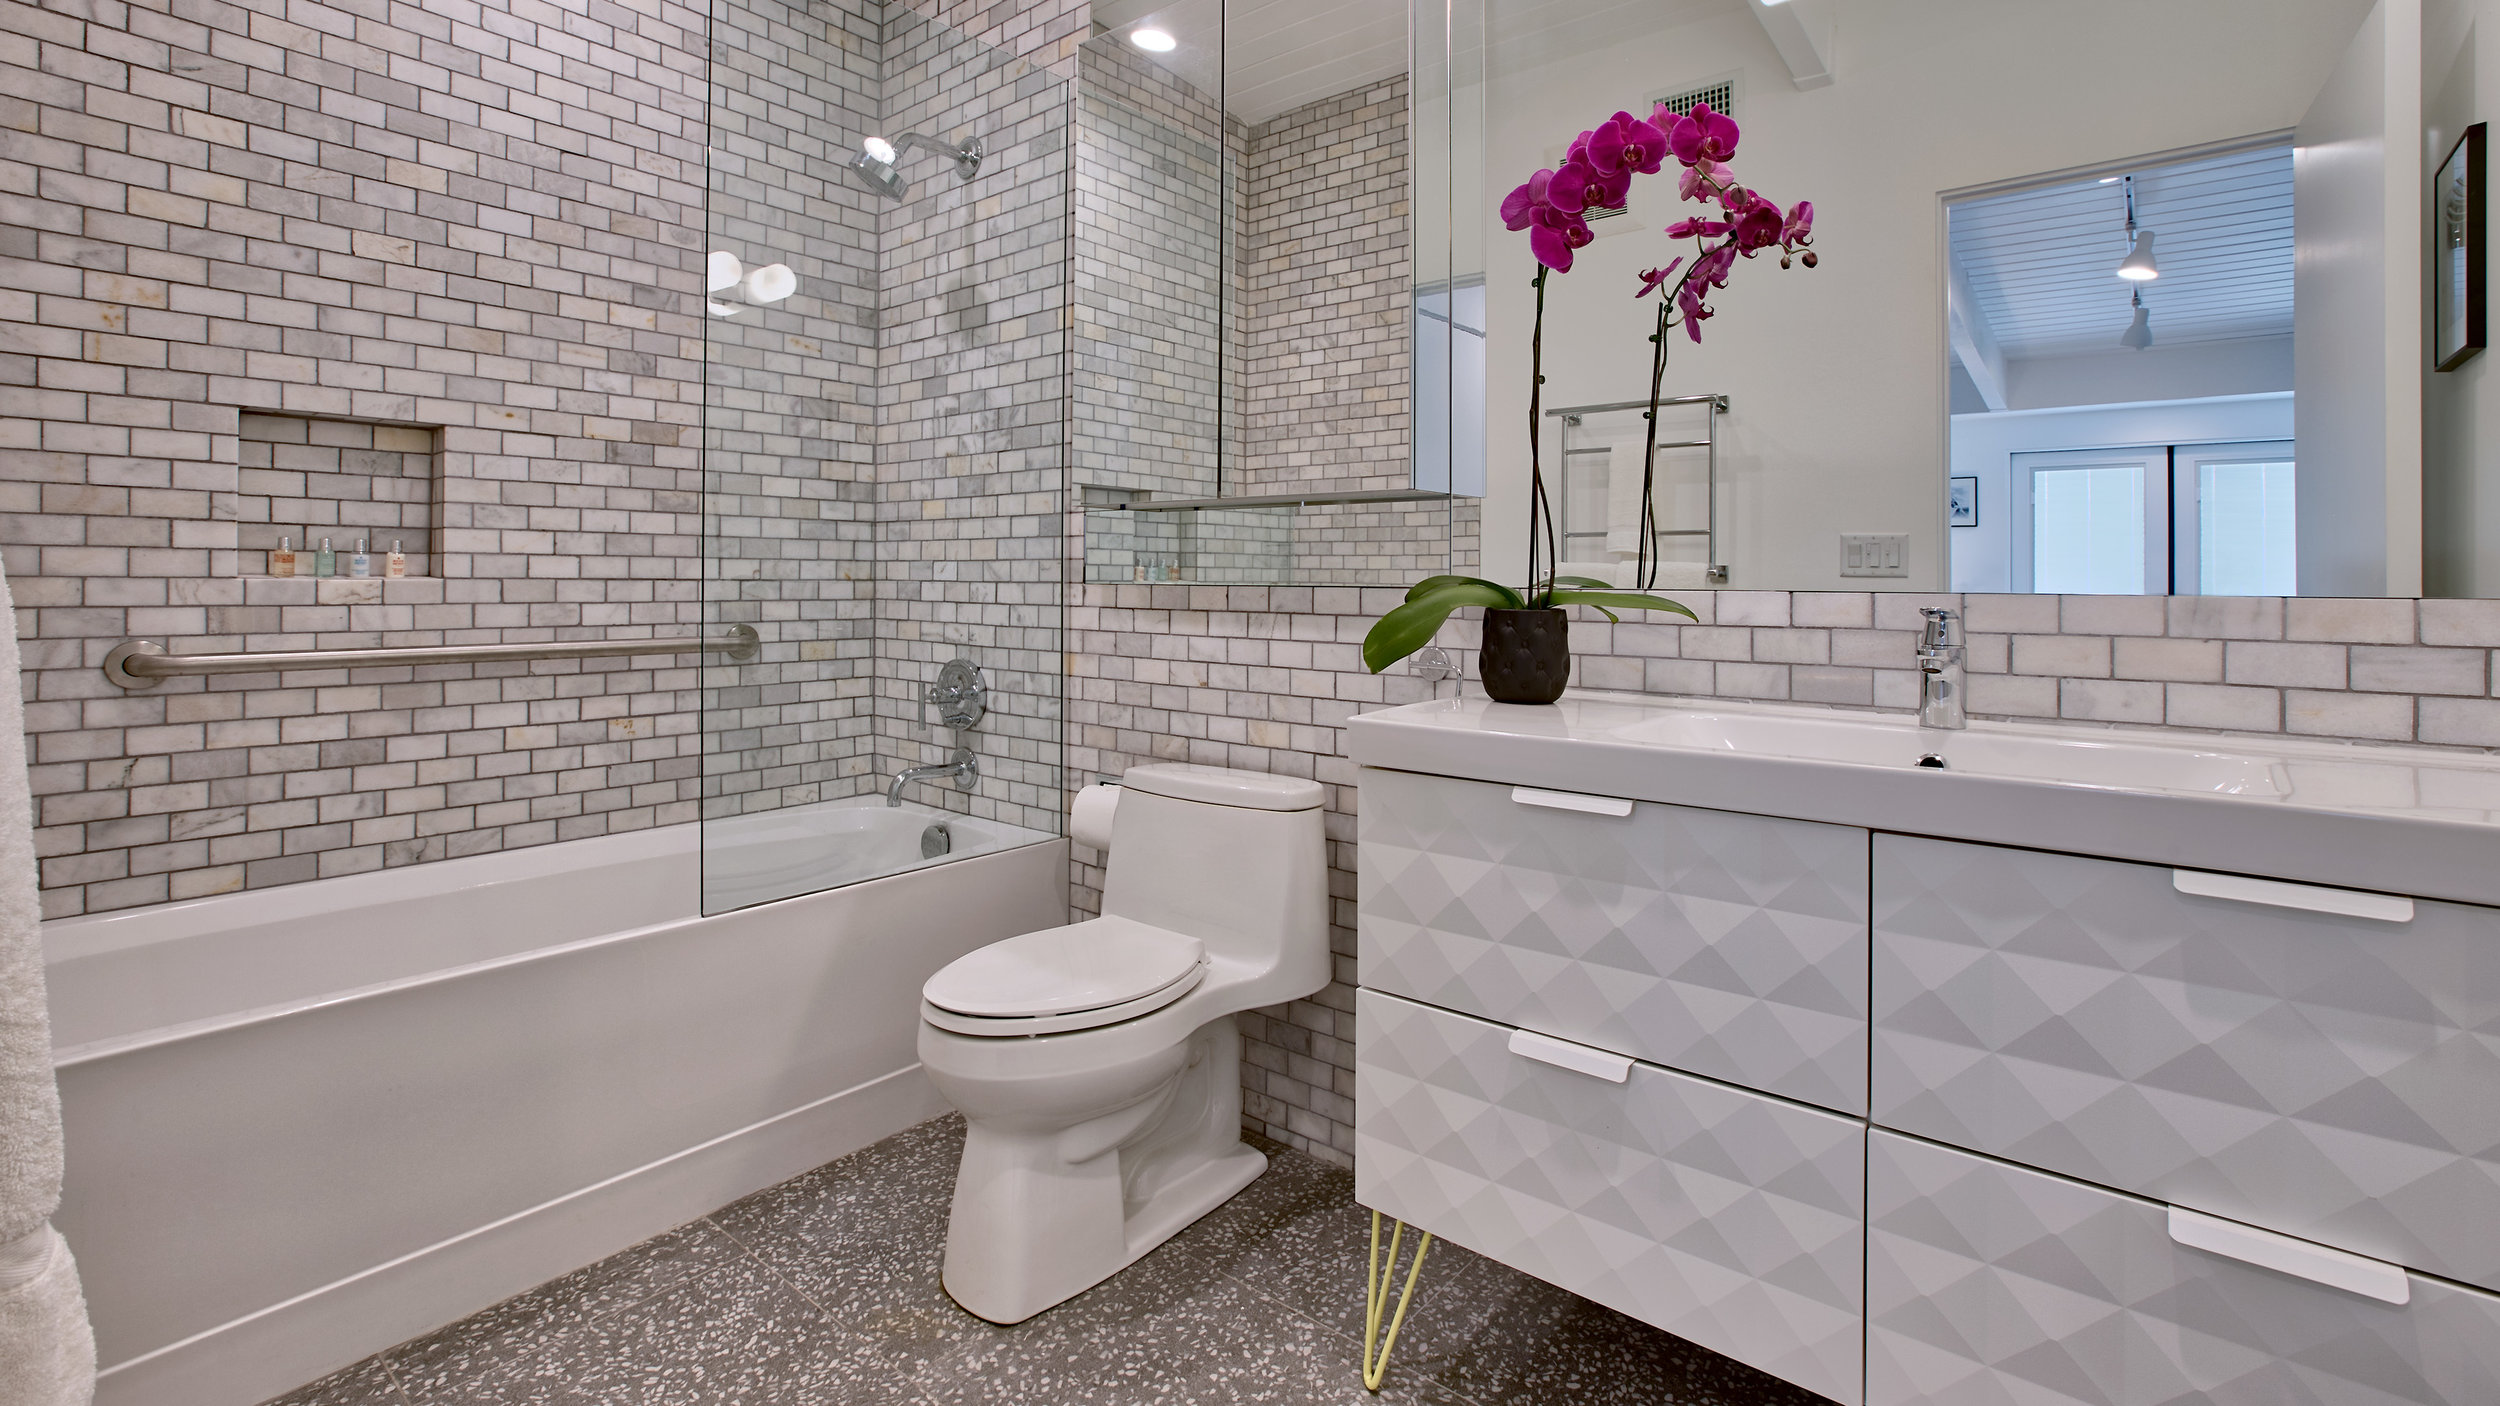 Bathroom #5: the yellow bedroom private bathroom. Marble tile, barrier shower over tub, large vanity....lots of room!